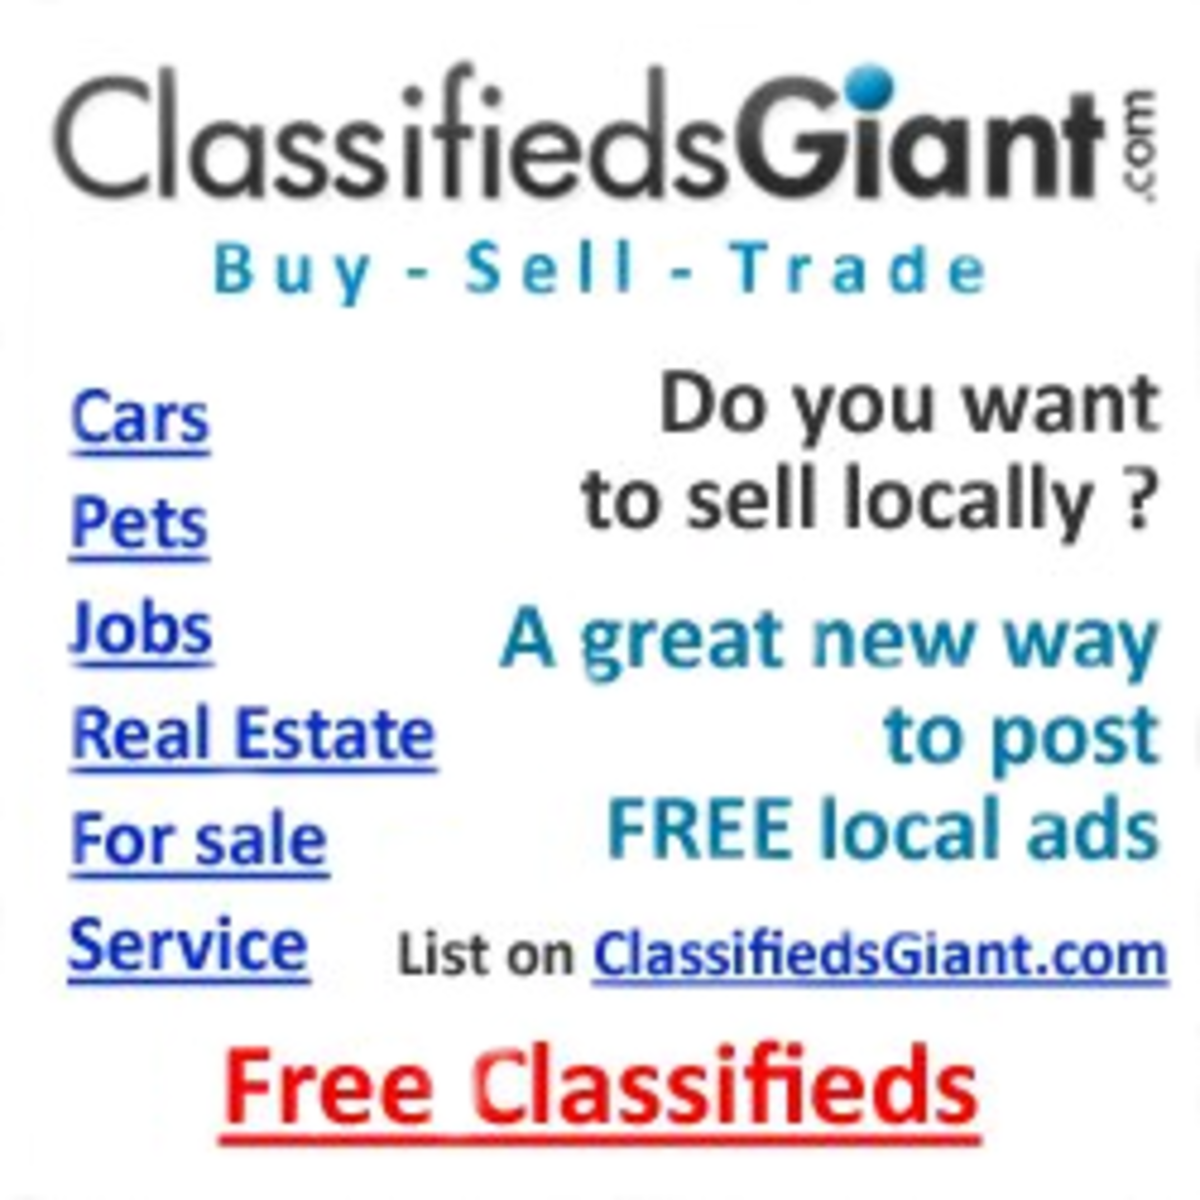 Other classifieds like craigslist